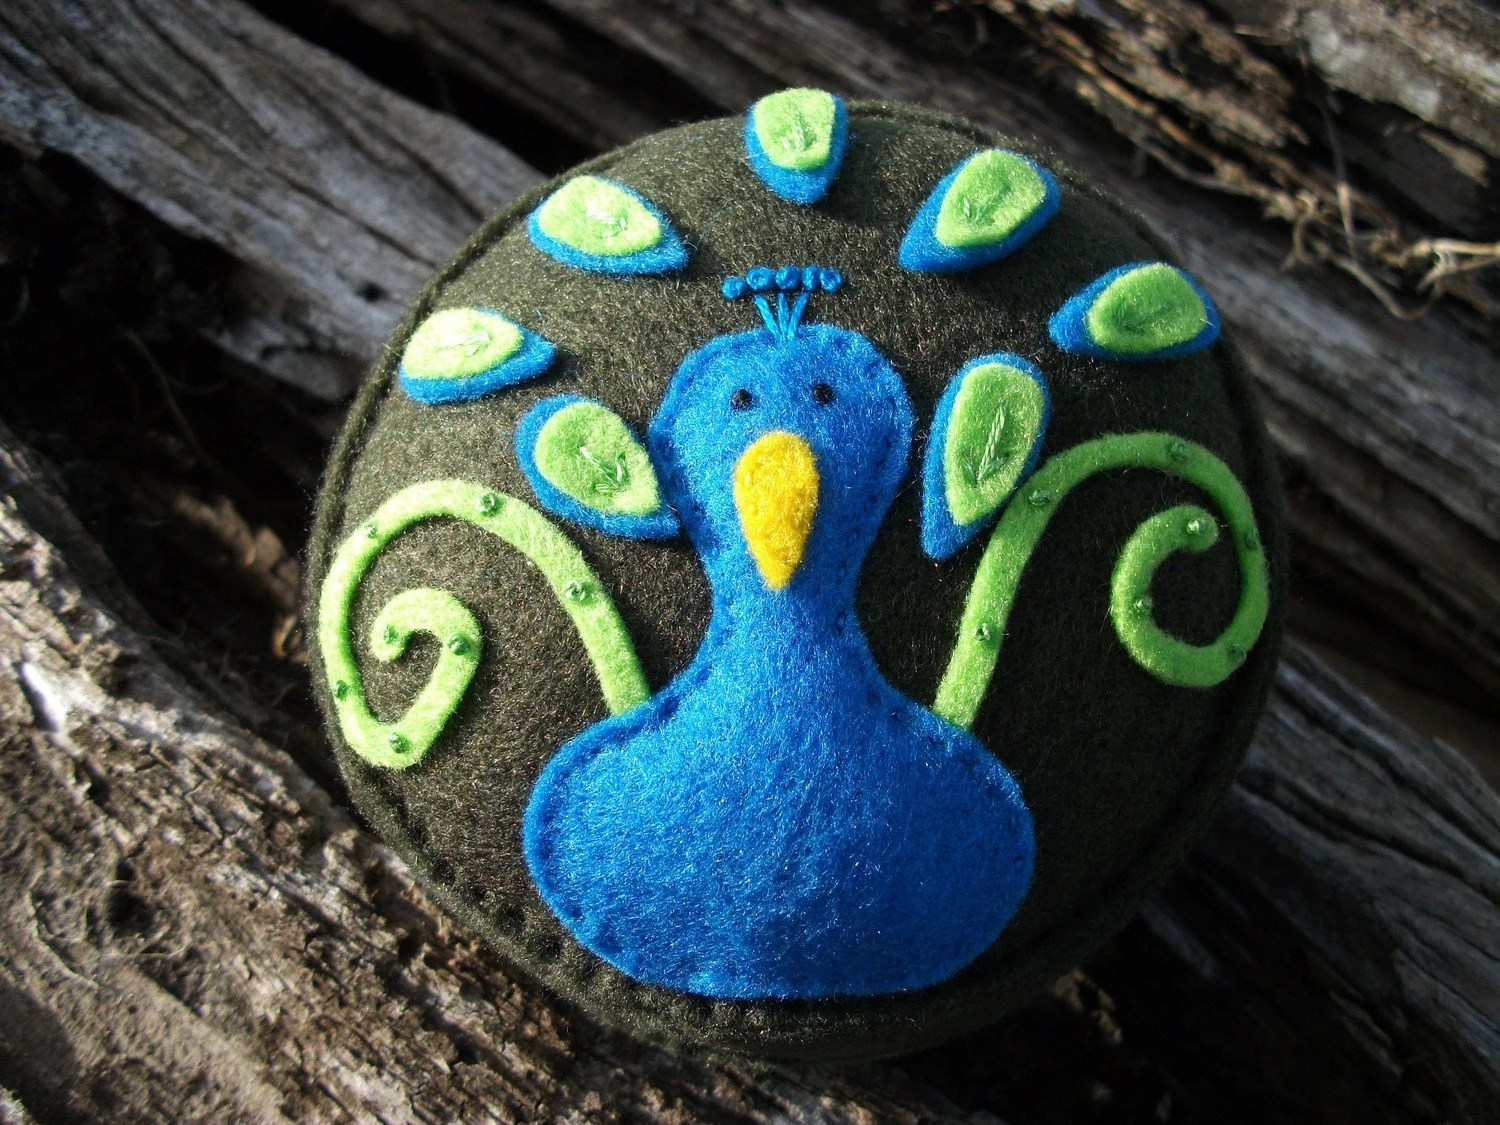 peacock, pin cushion, pincushion, spincushions